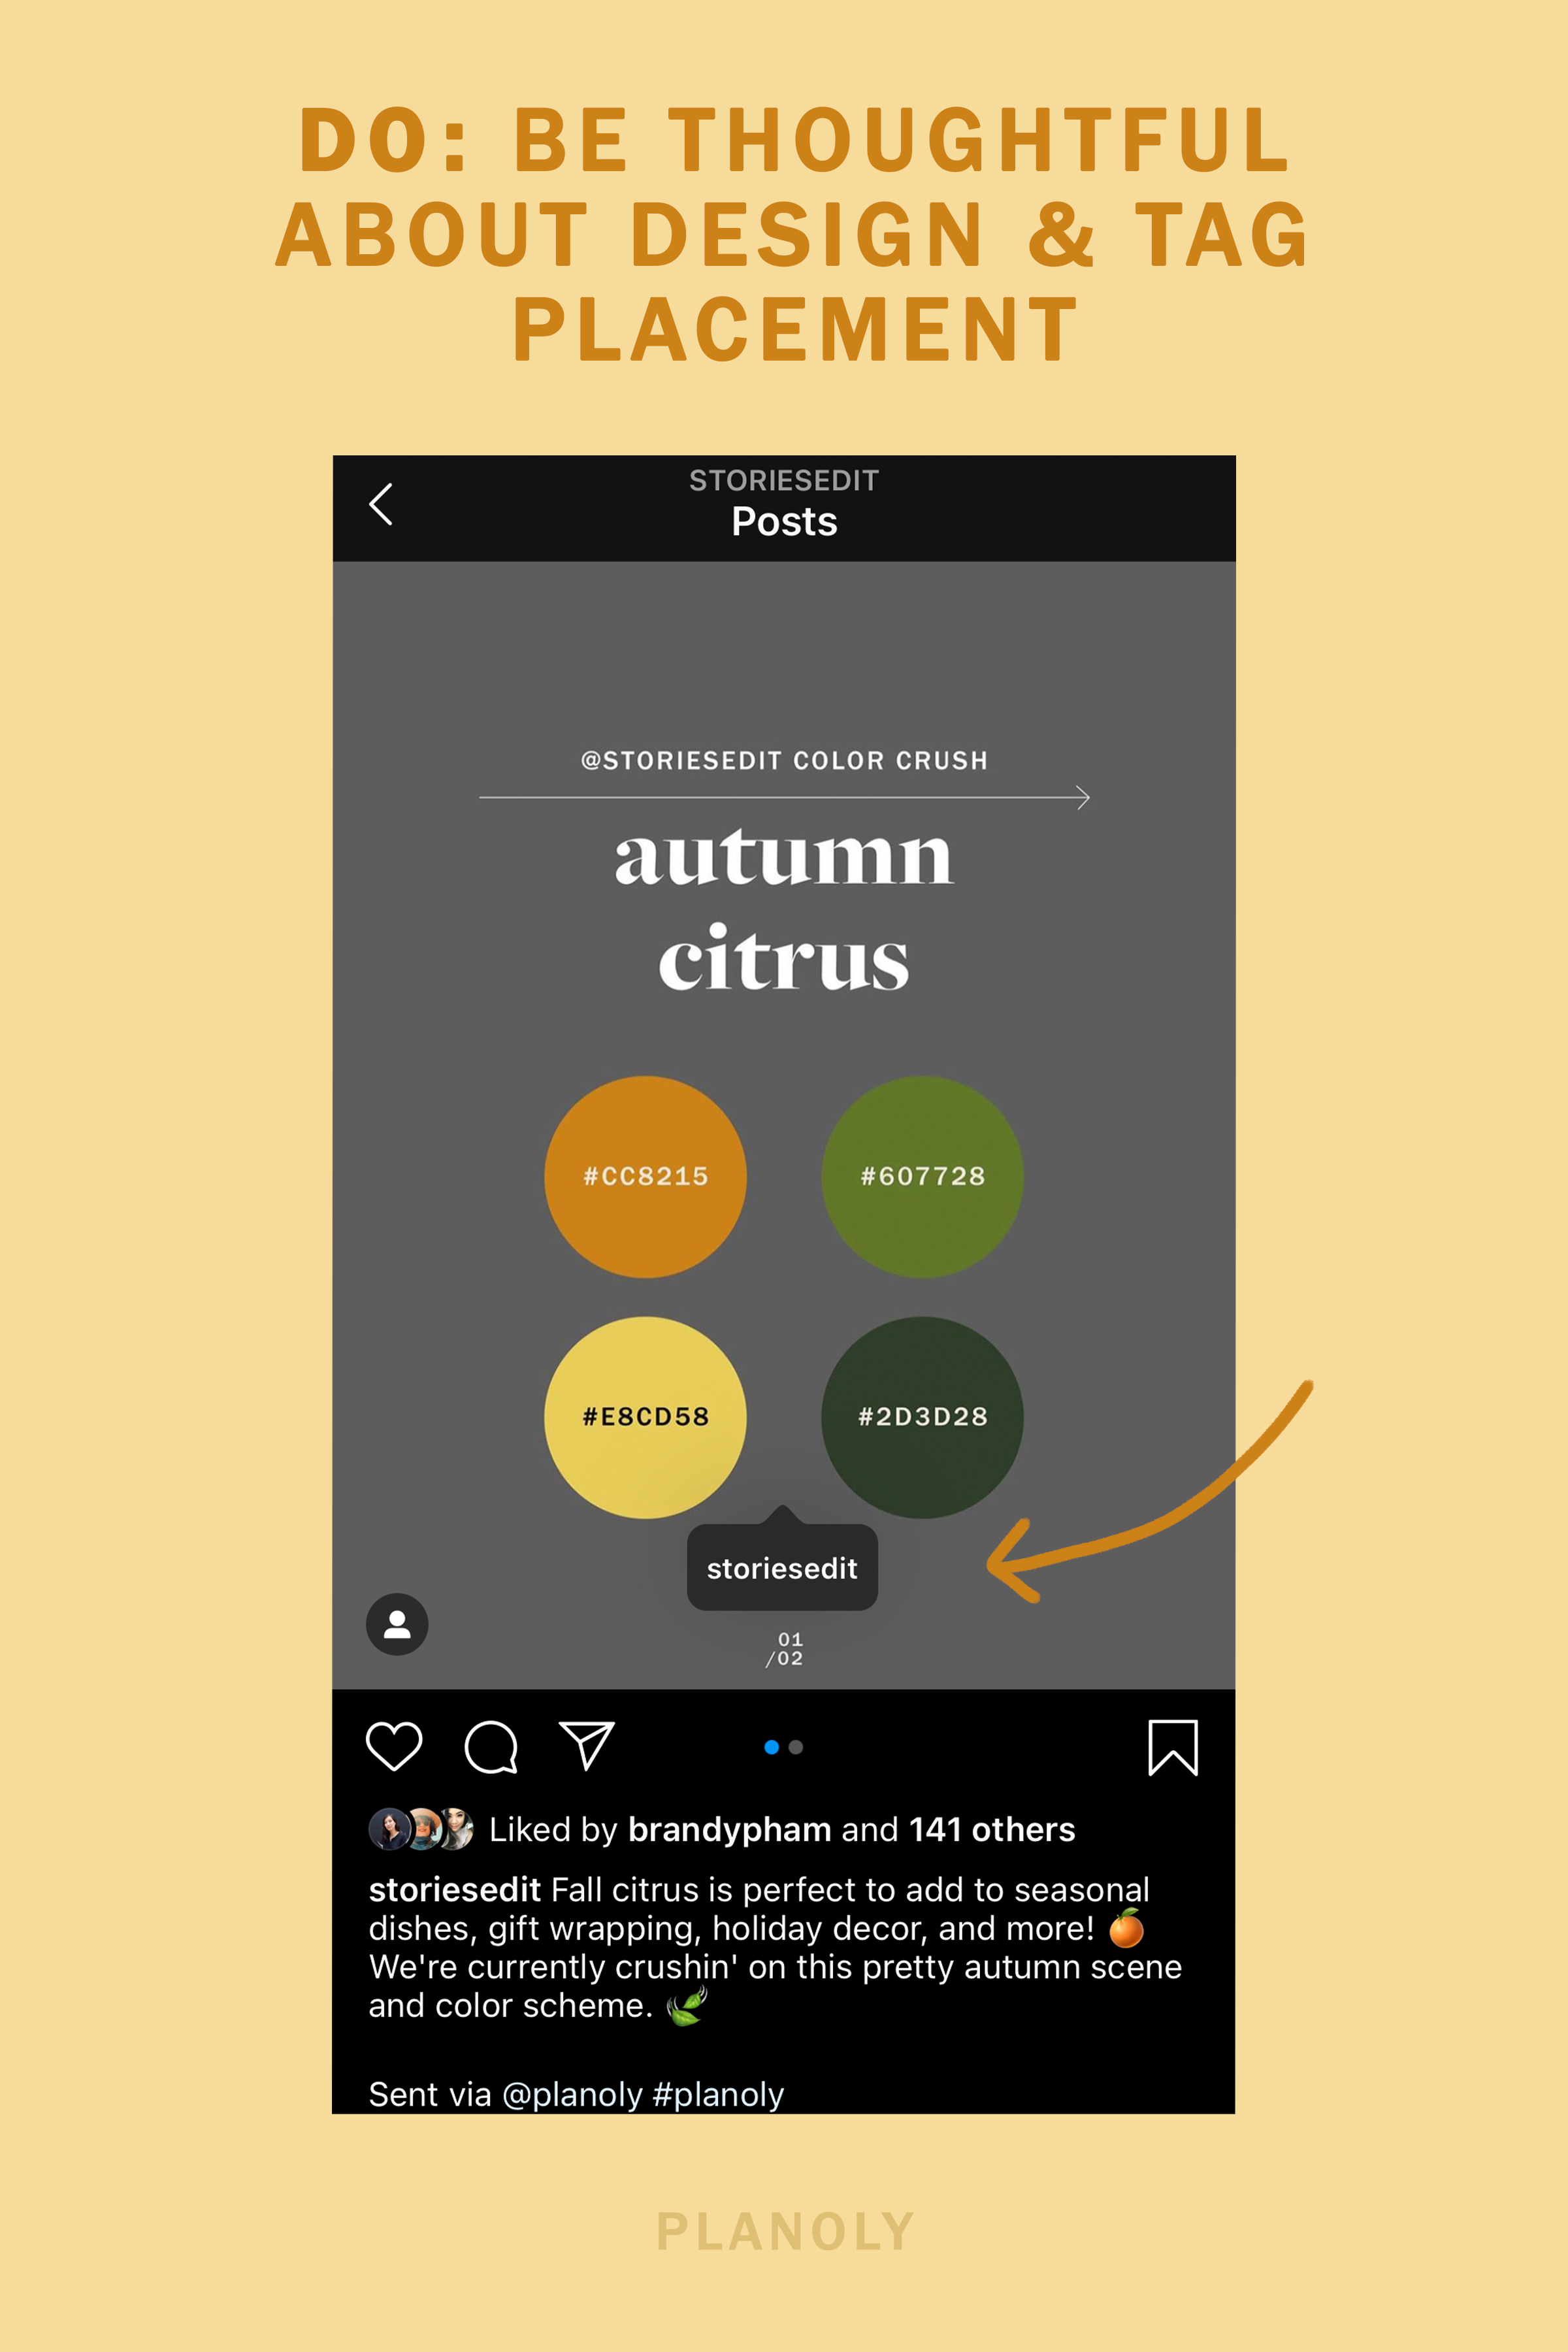 PLANOLY-Blog Post-Intagram Best Practices for Designers-Image 3